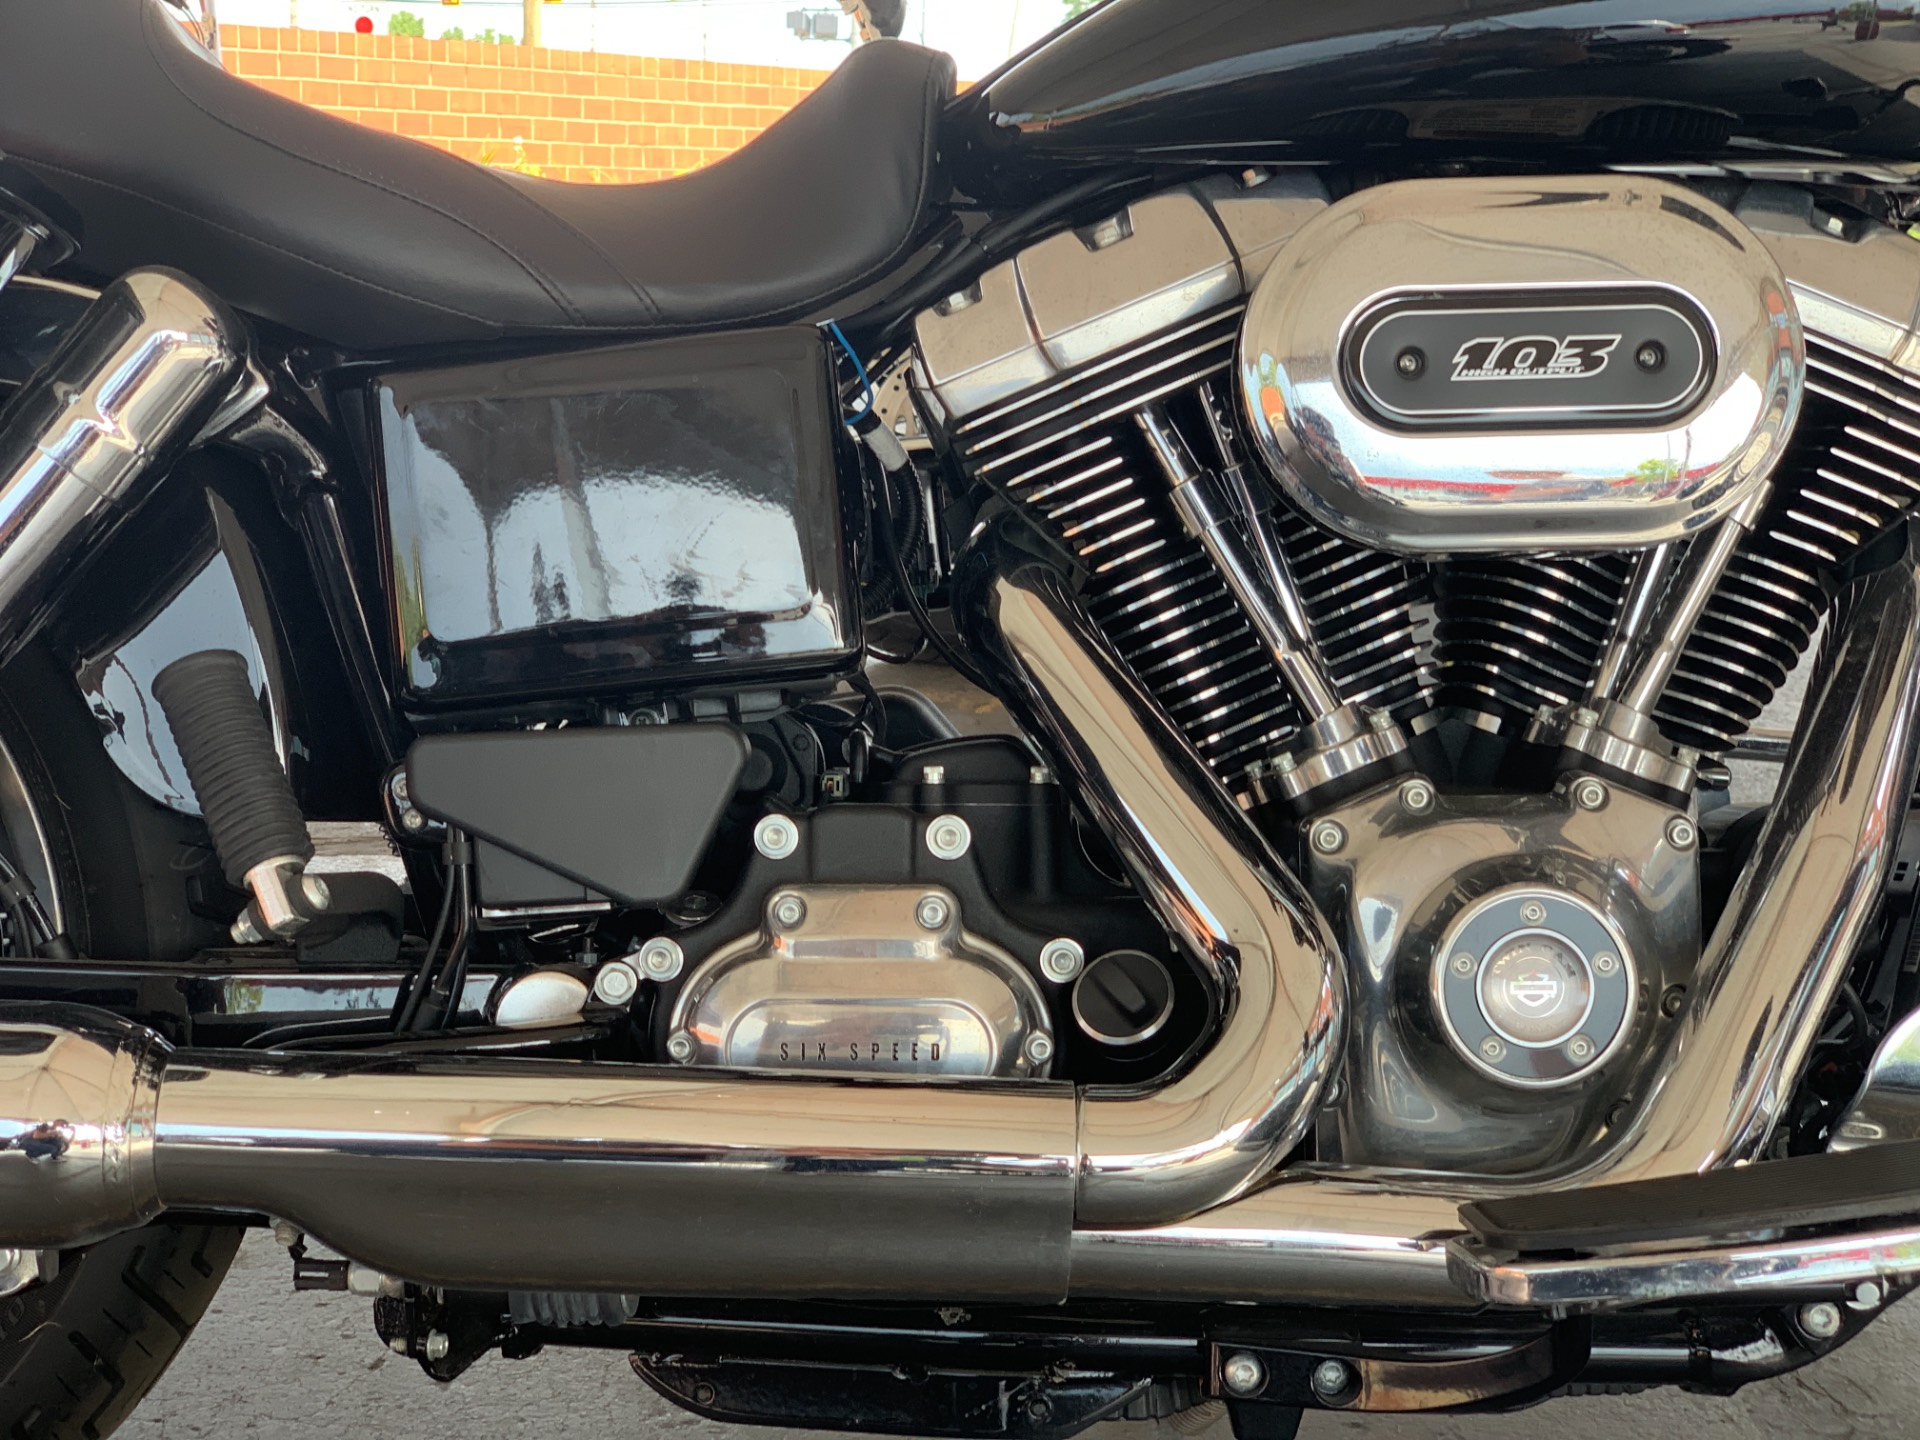 2016 Harley-Davidson FLD103 in Waterford, Michigan - Photo 4